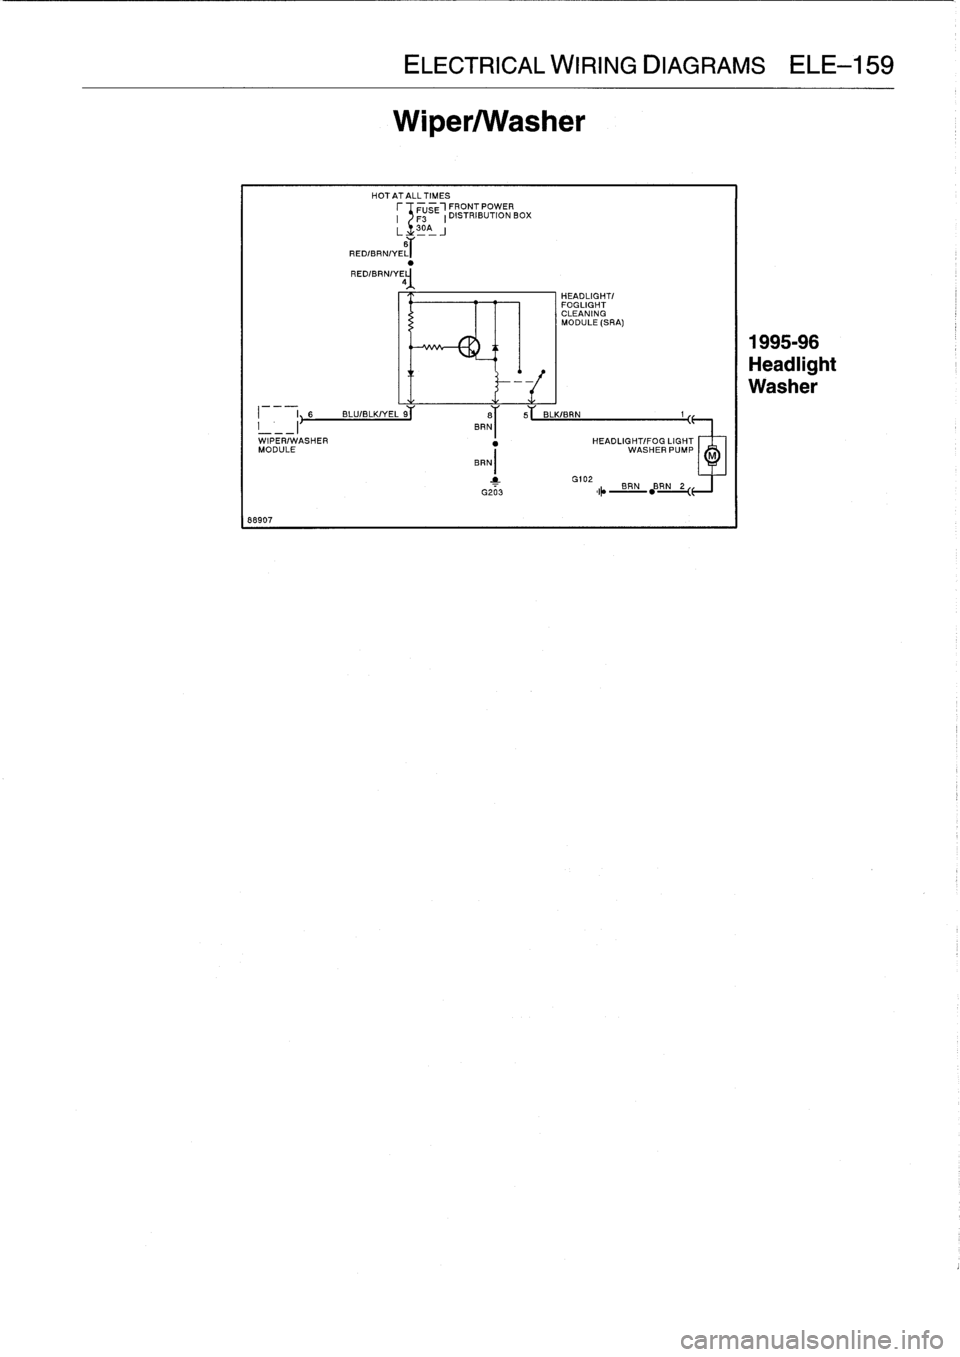 w960_2800 641 bmw m3 1992 e36 workshop manual BMW Stereo Wiring Diagram at readyjetset.co